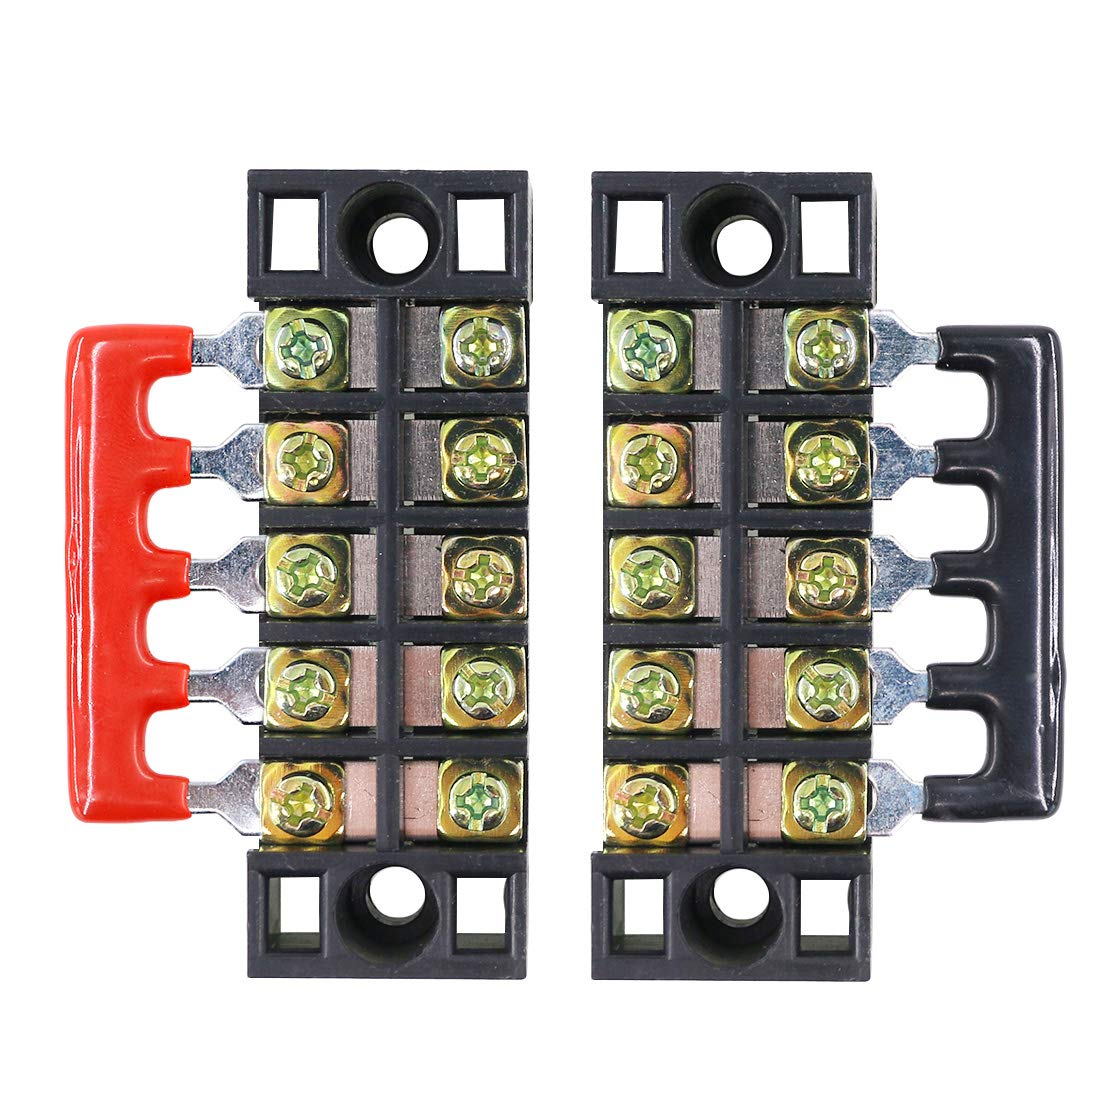 Hilitchi 12pcs 600V 15A 5 Position Double Row Screw Terminal Strip and 400V 10A 12 Postions Red//Black Pre Insulated Terminal Barrier Strip